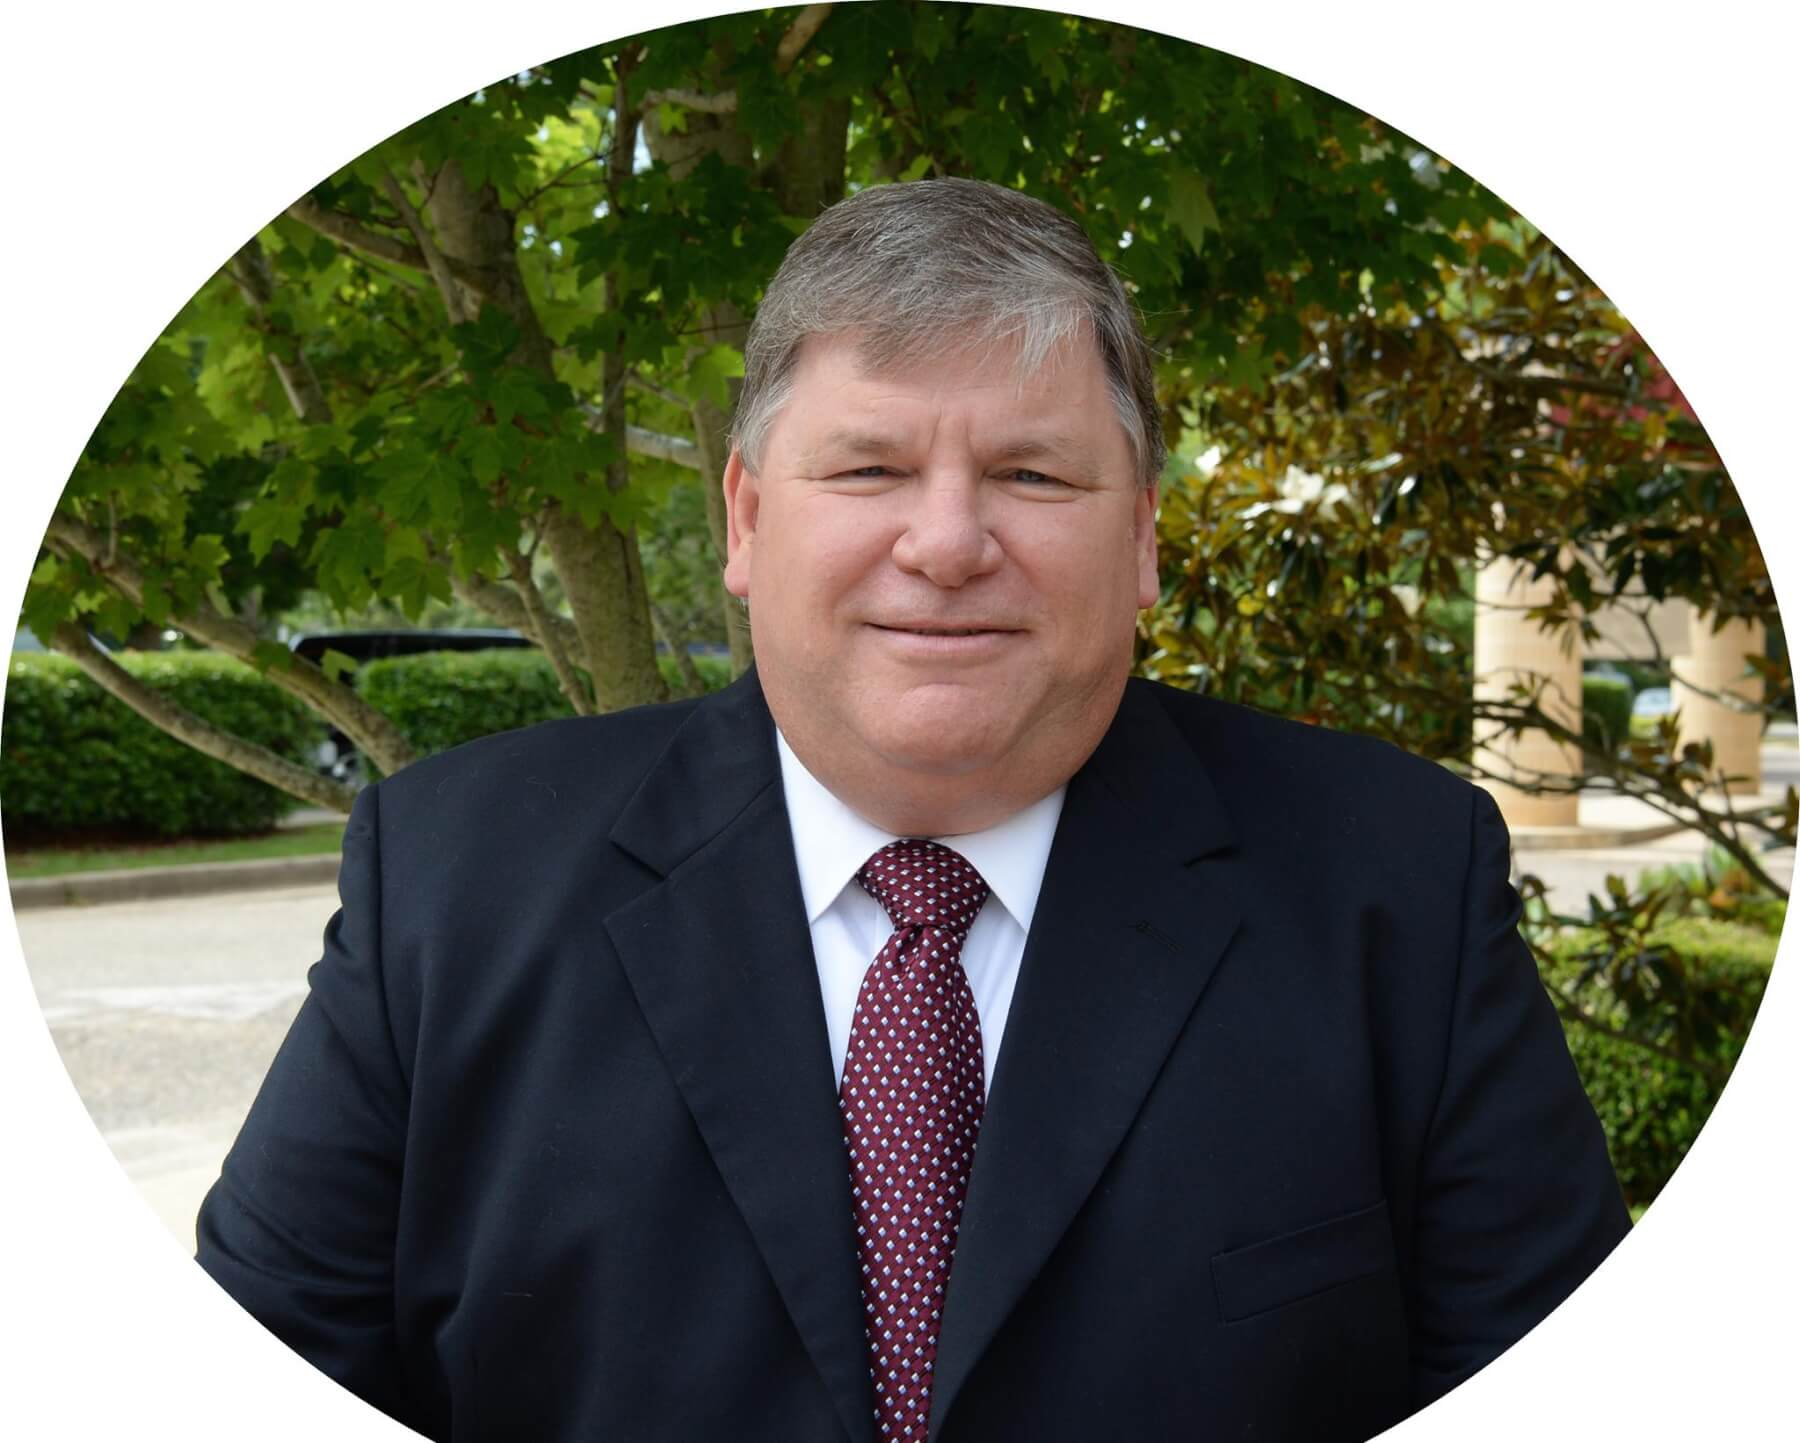 Phil Nix announces Fairhope City Council candidacy